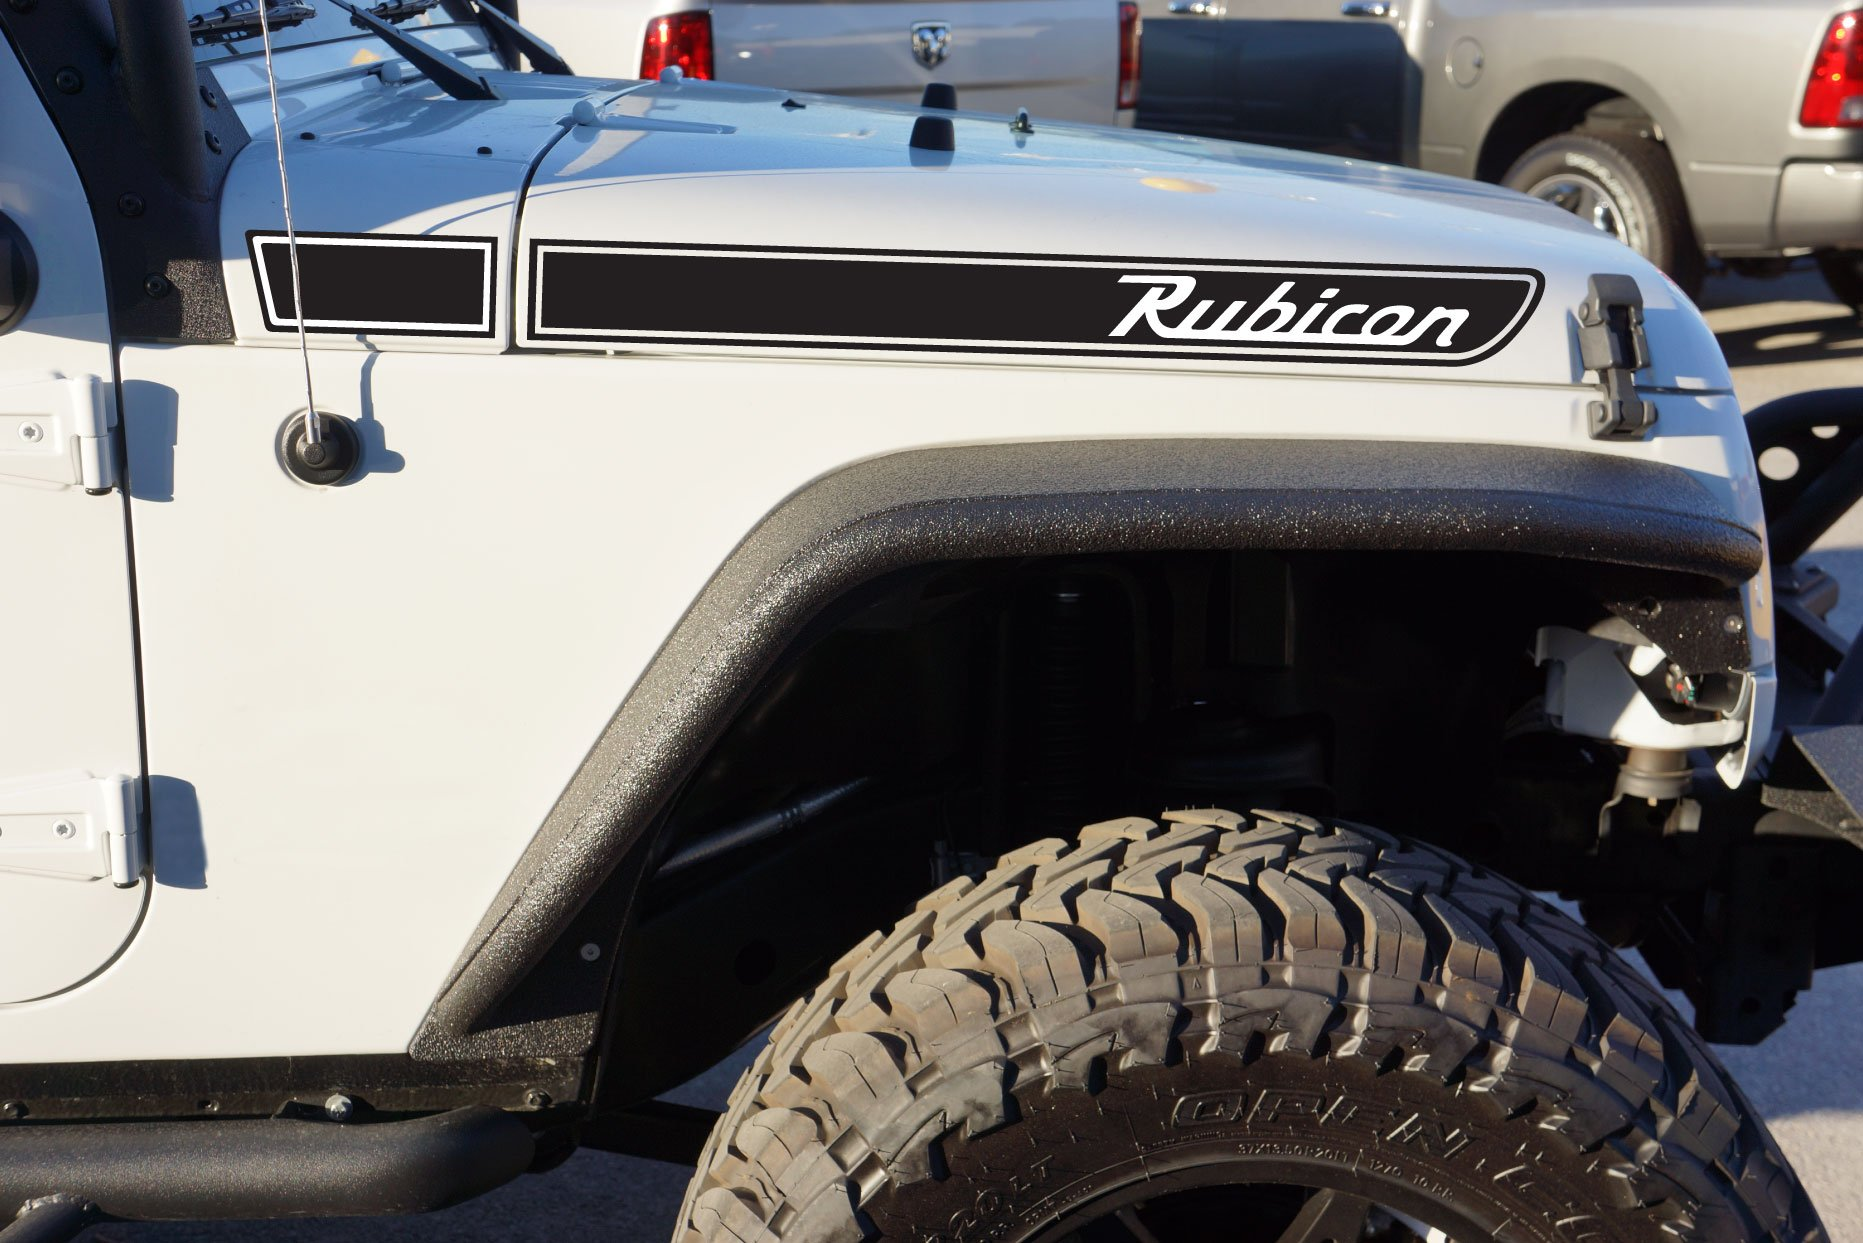 The Pixel Hut gs00092 Matt Black Rubicon Retro Hood Decals for Jeep Wrangler JK (2007-2018)